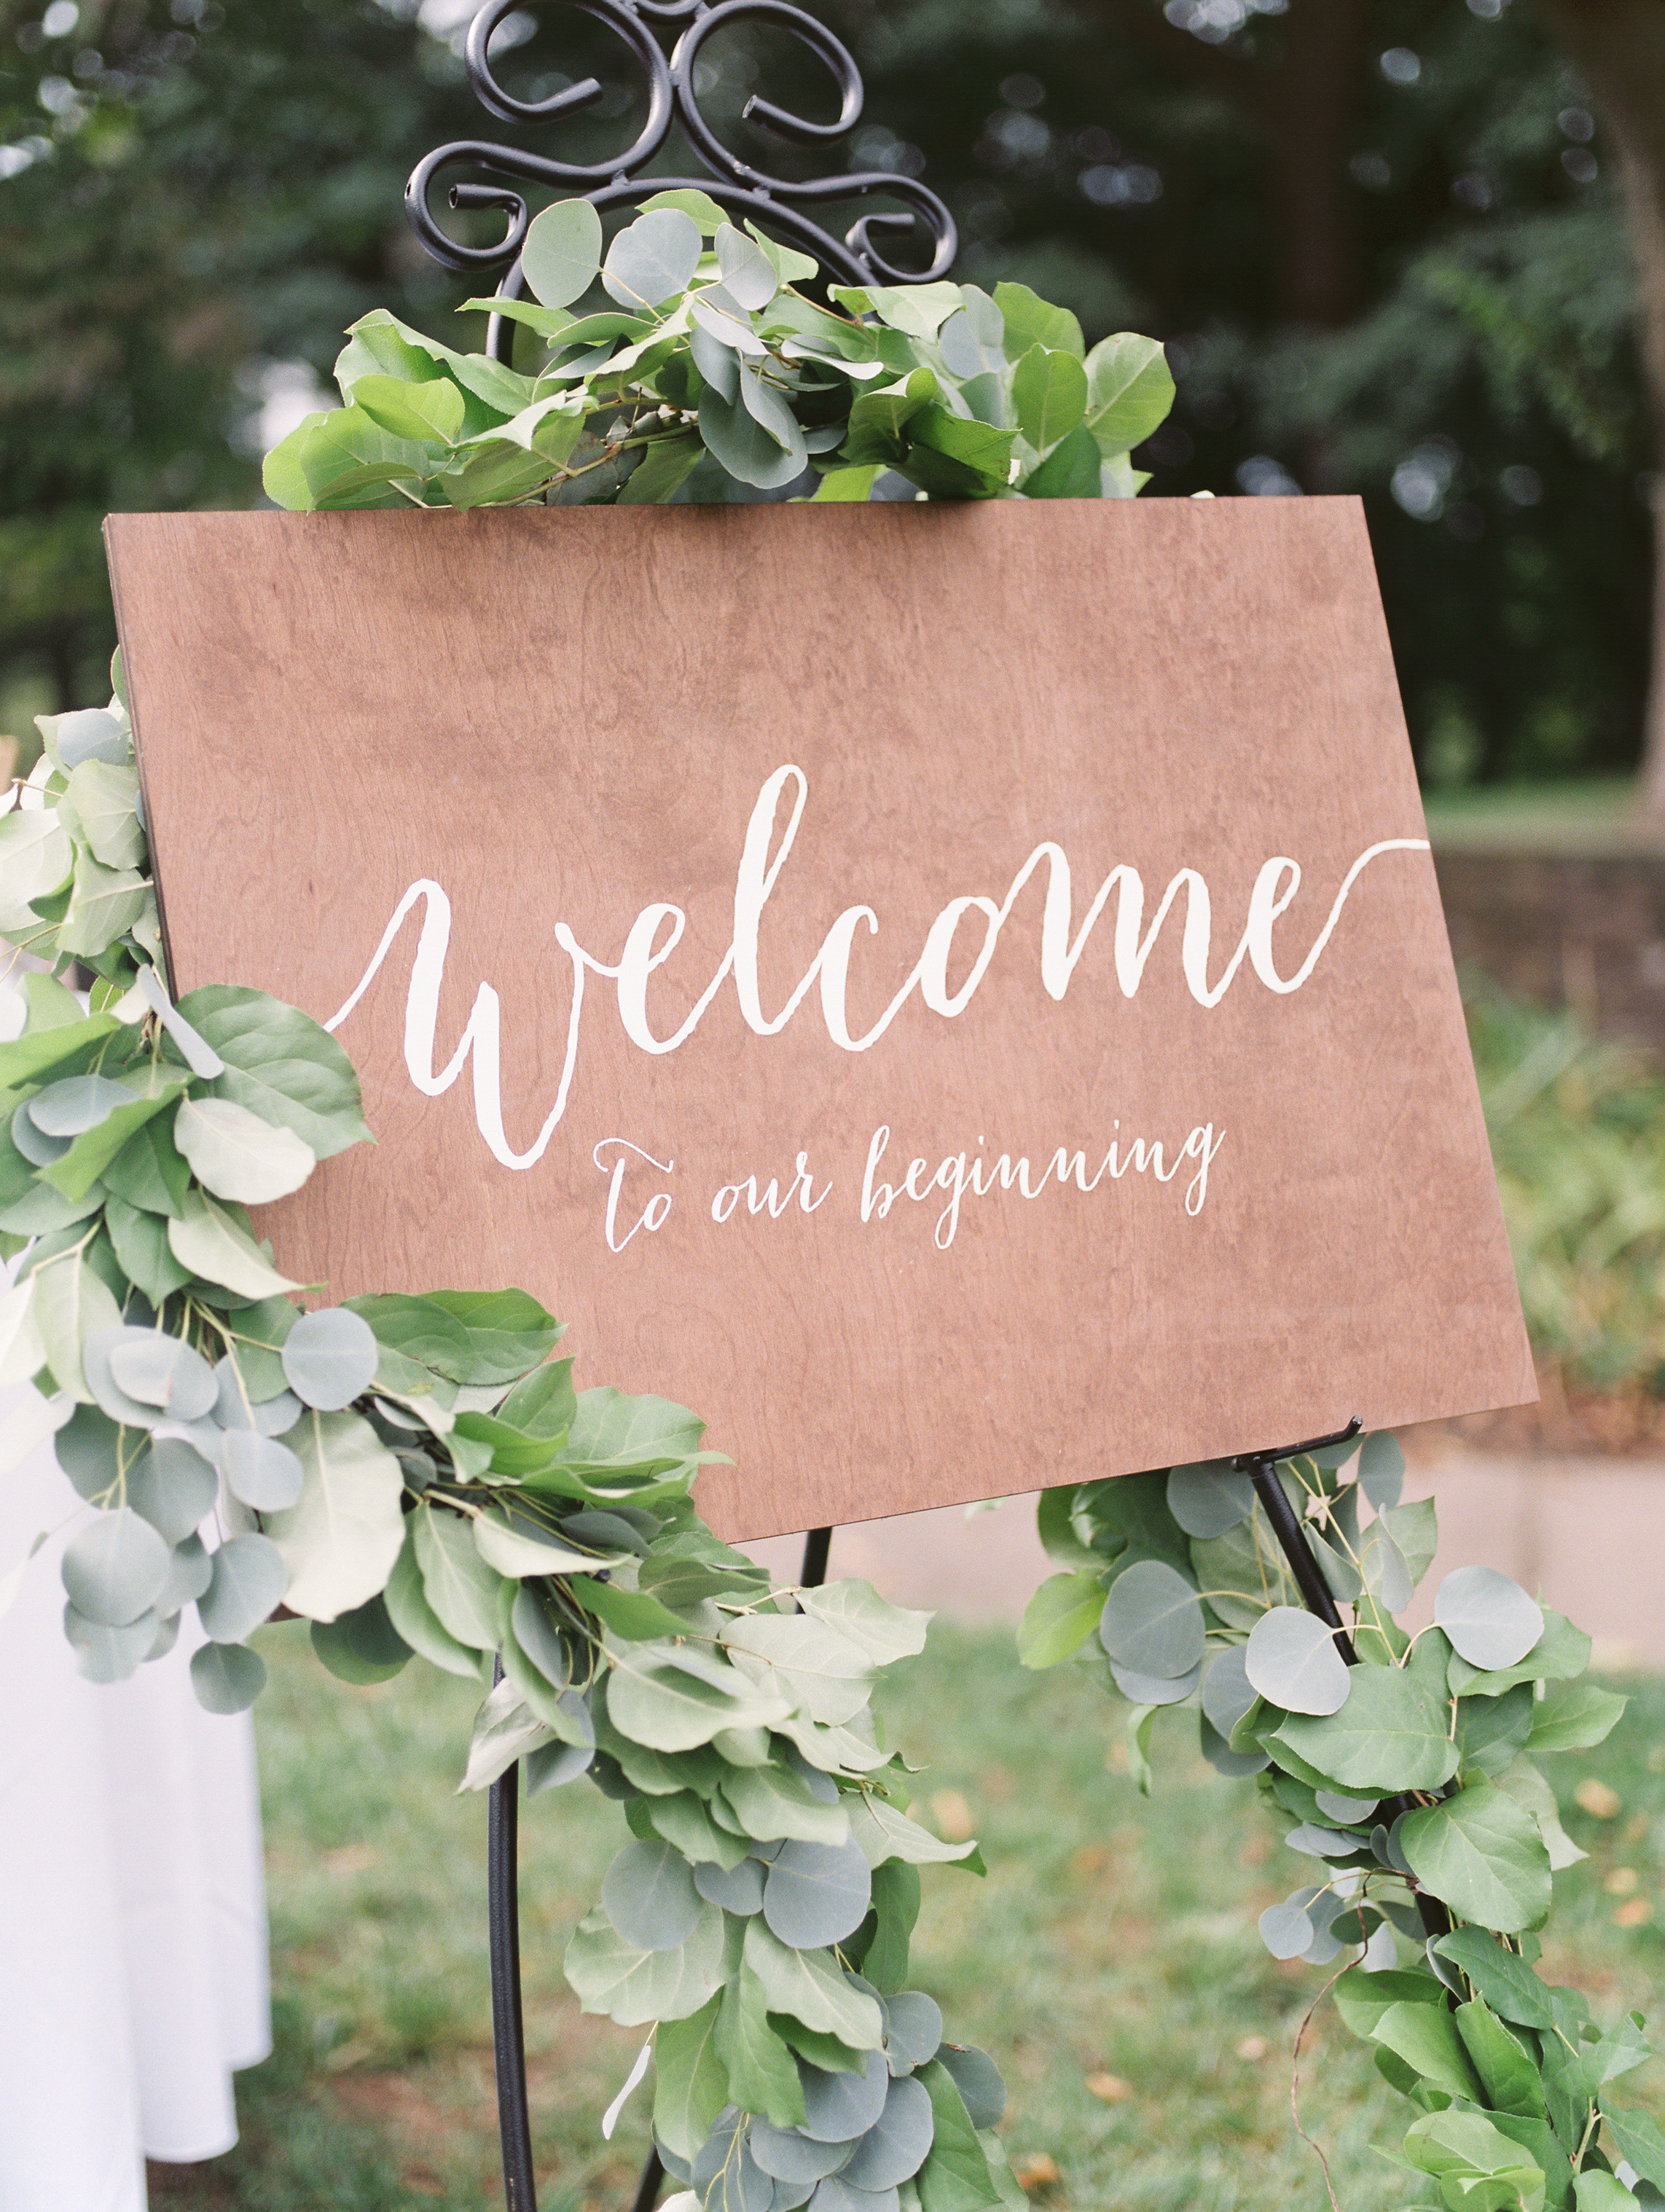 We loved this elegant wooden welcome sign from Alicia and Mike's bright boho chic Tyler Gardens wedding in Bucks County